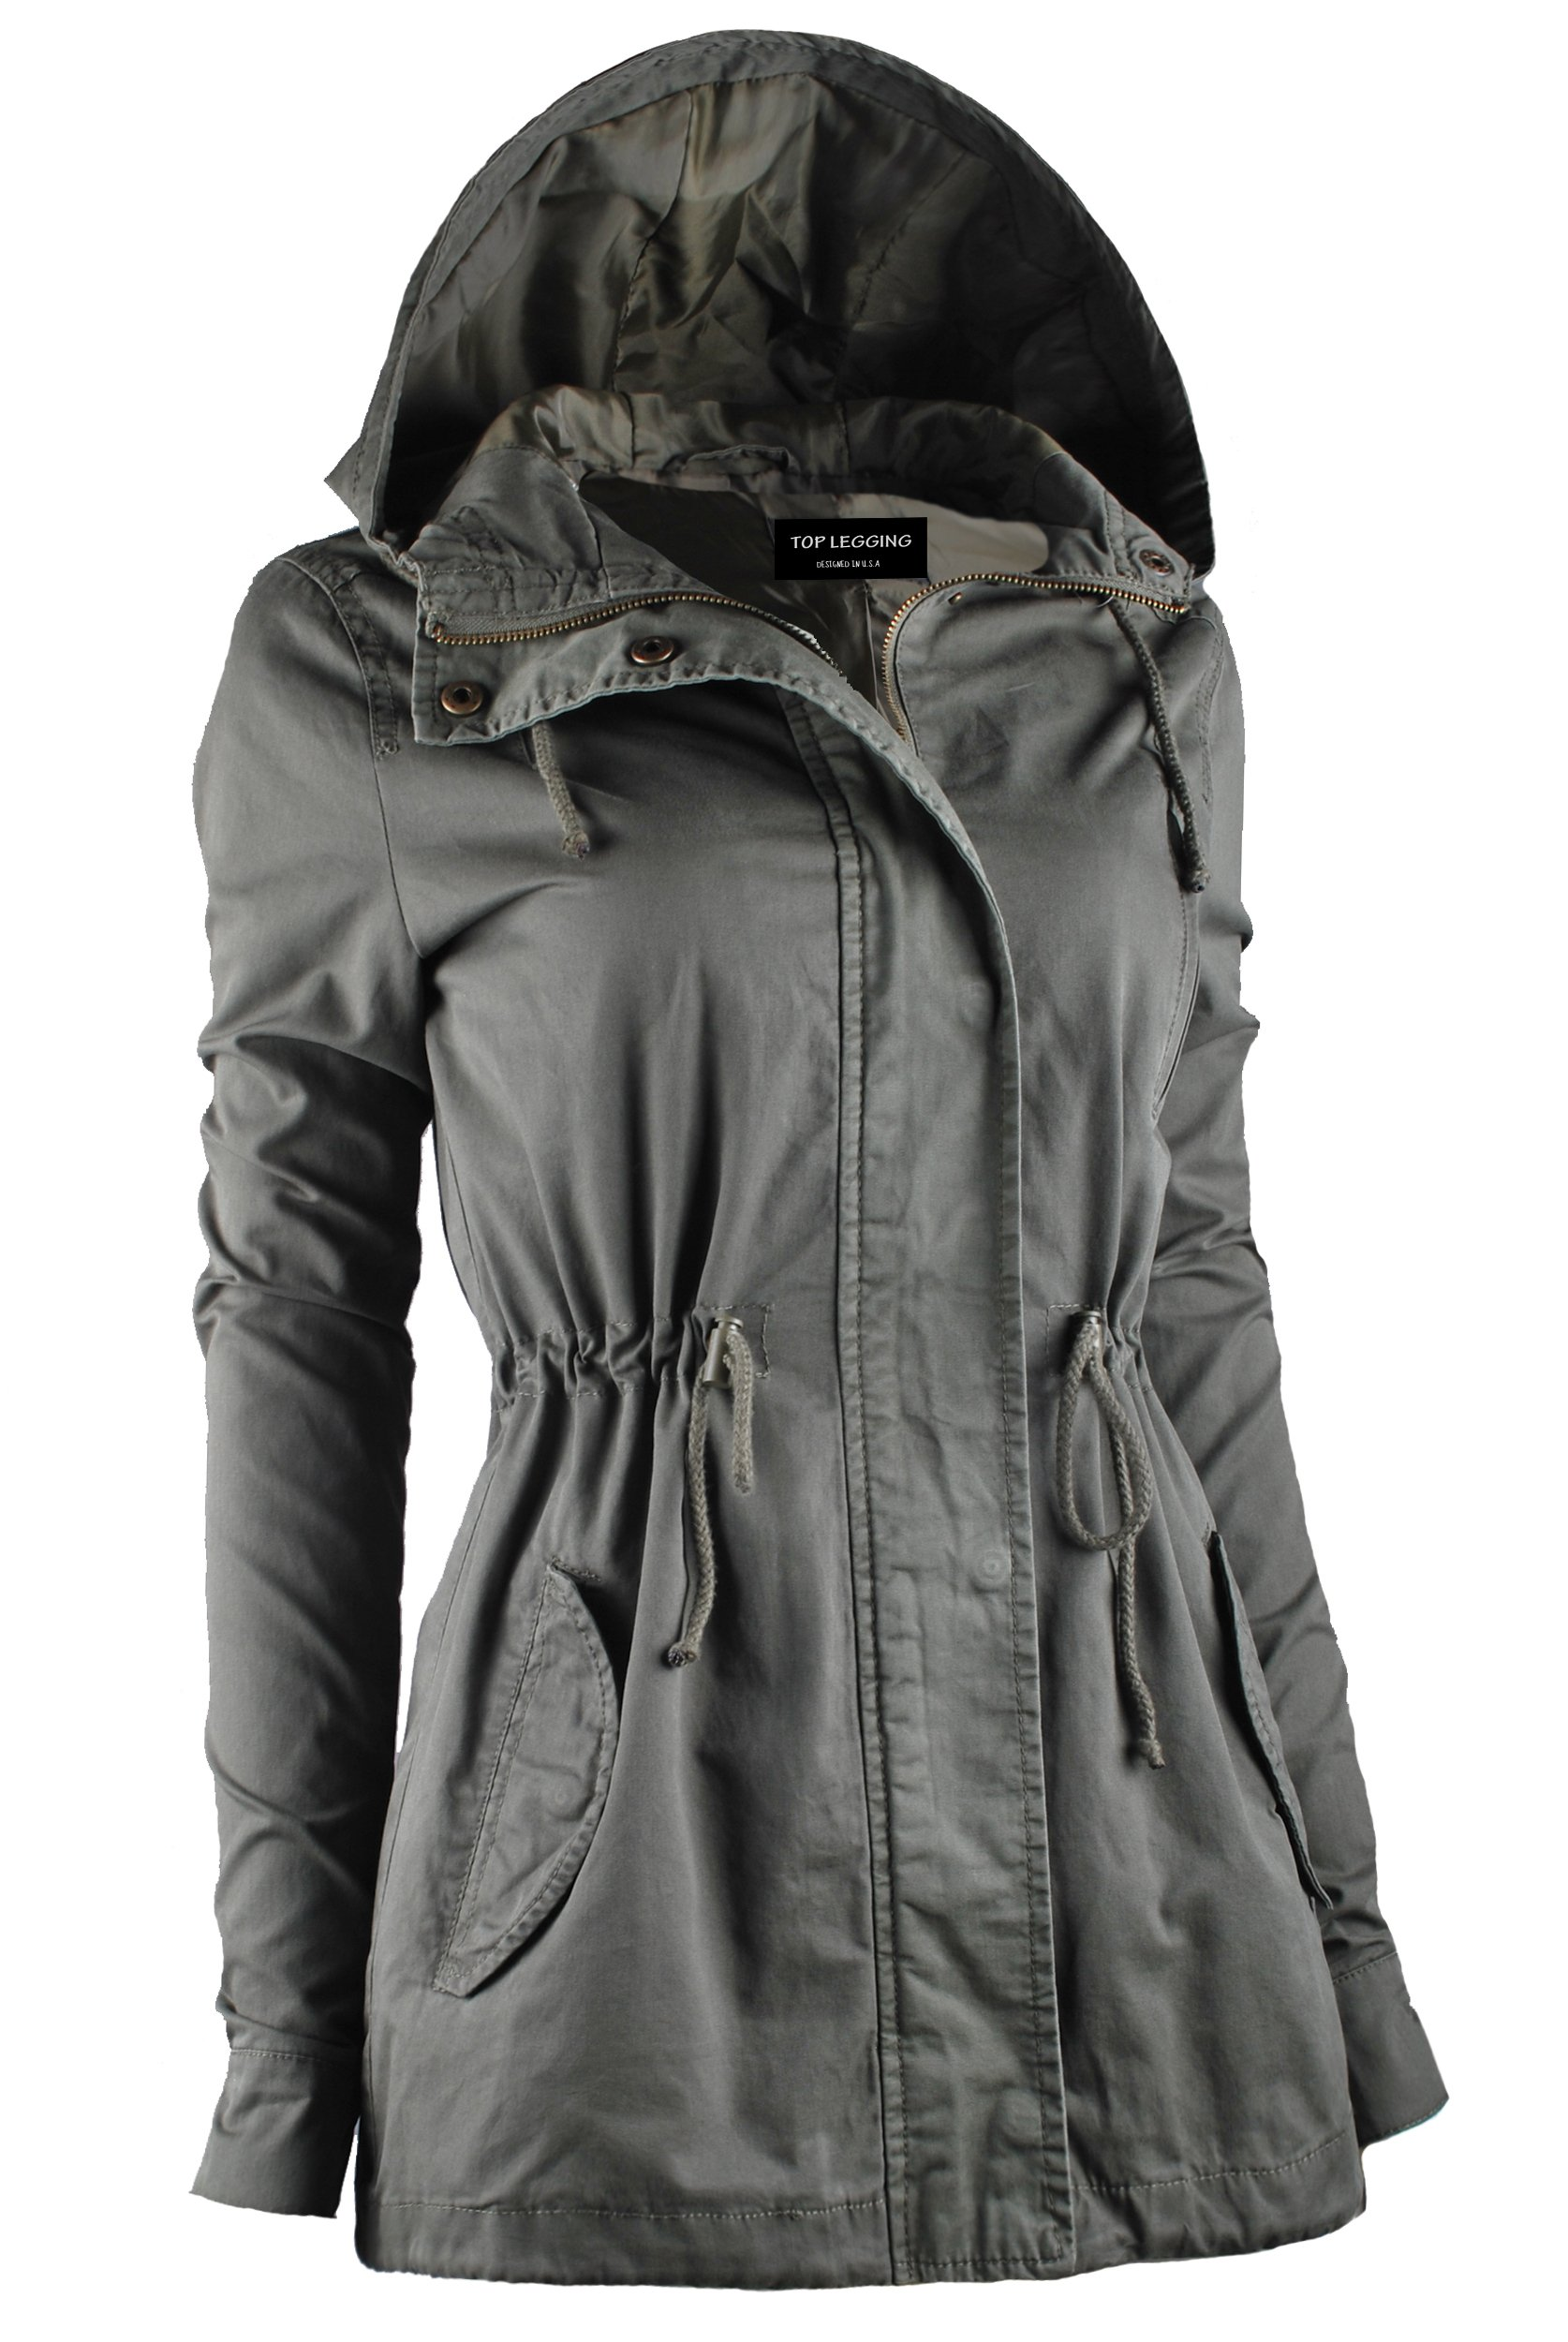 TL Women's Utility Militray Anorak Drawtring Parka Hoodie Jackets with Pocket_OLIVE 2XL